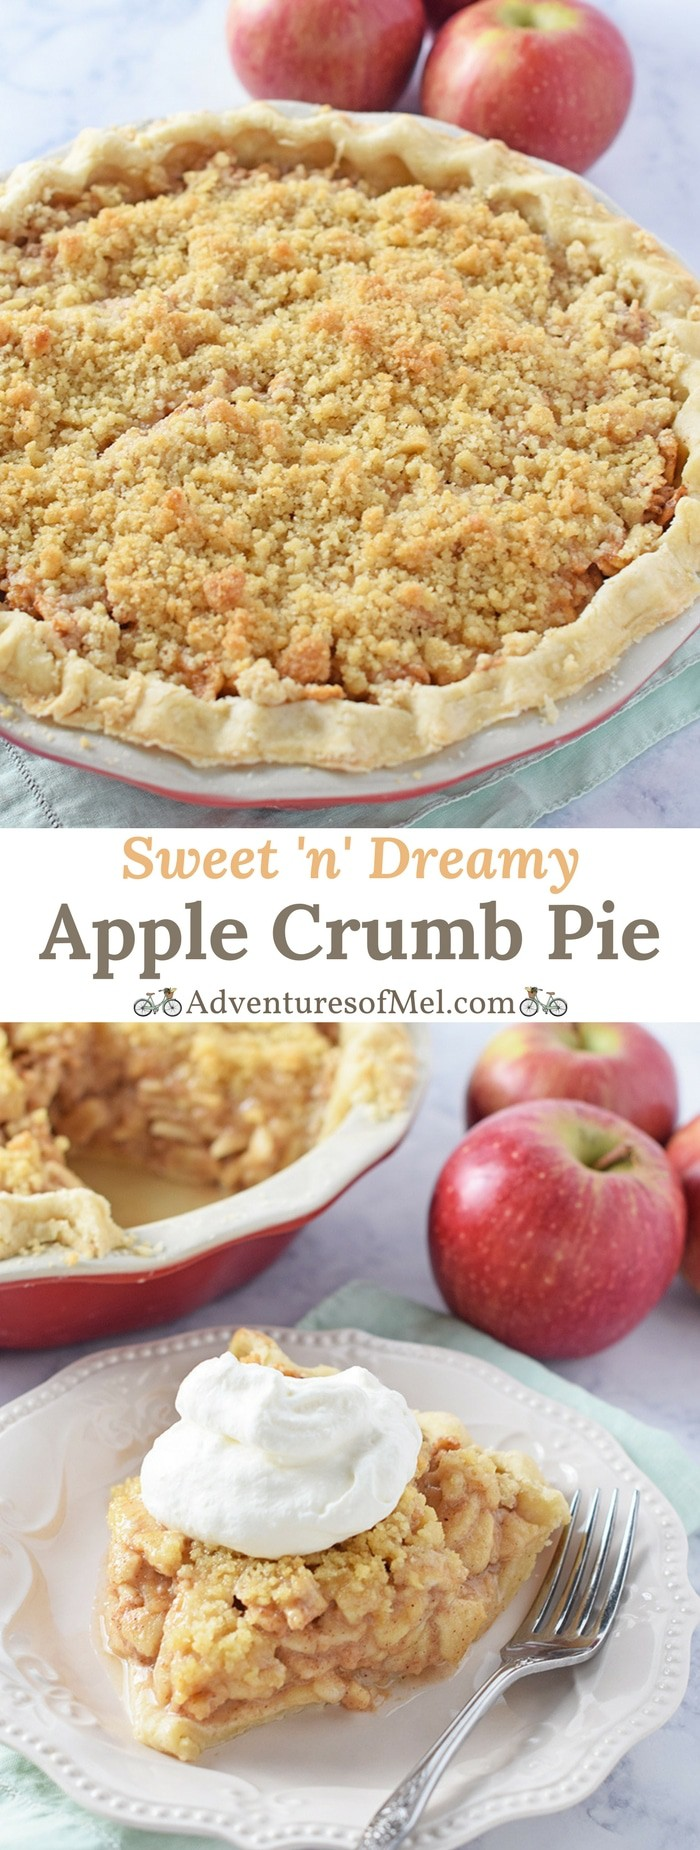 Apple Crumb Pie, made with fresh apples and a scrumptious brown sugar crumble topping, a delicious dessert. My family's favorite apple pie recipe!